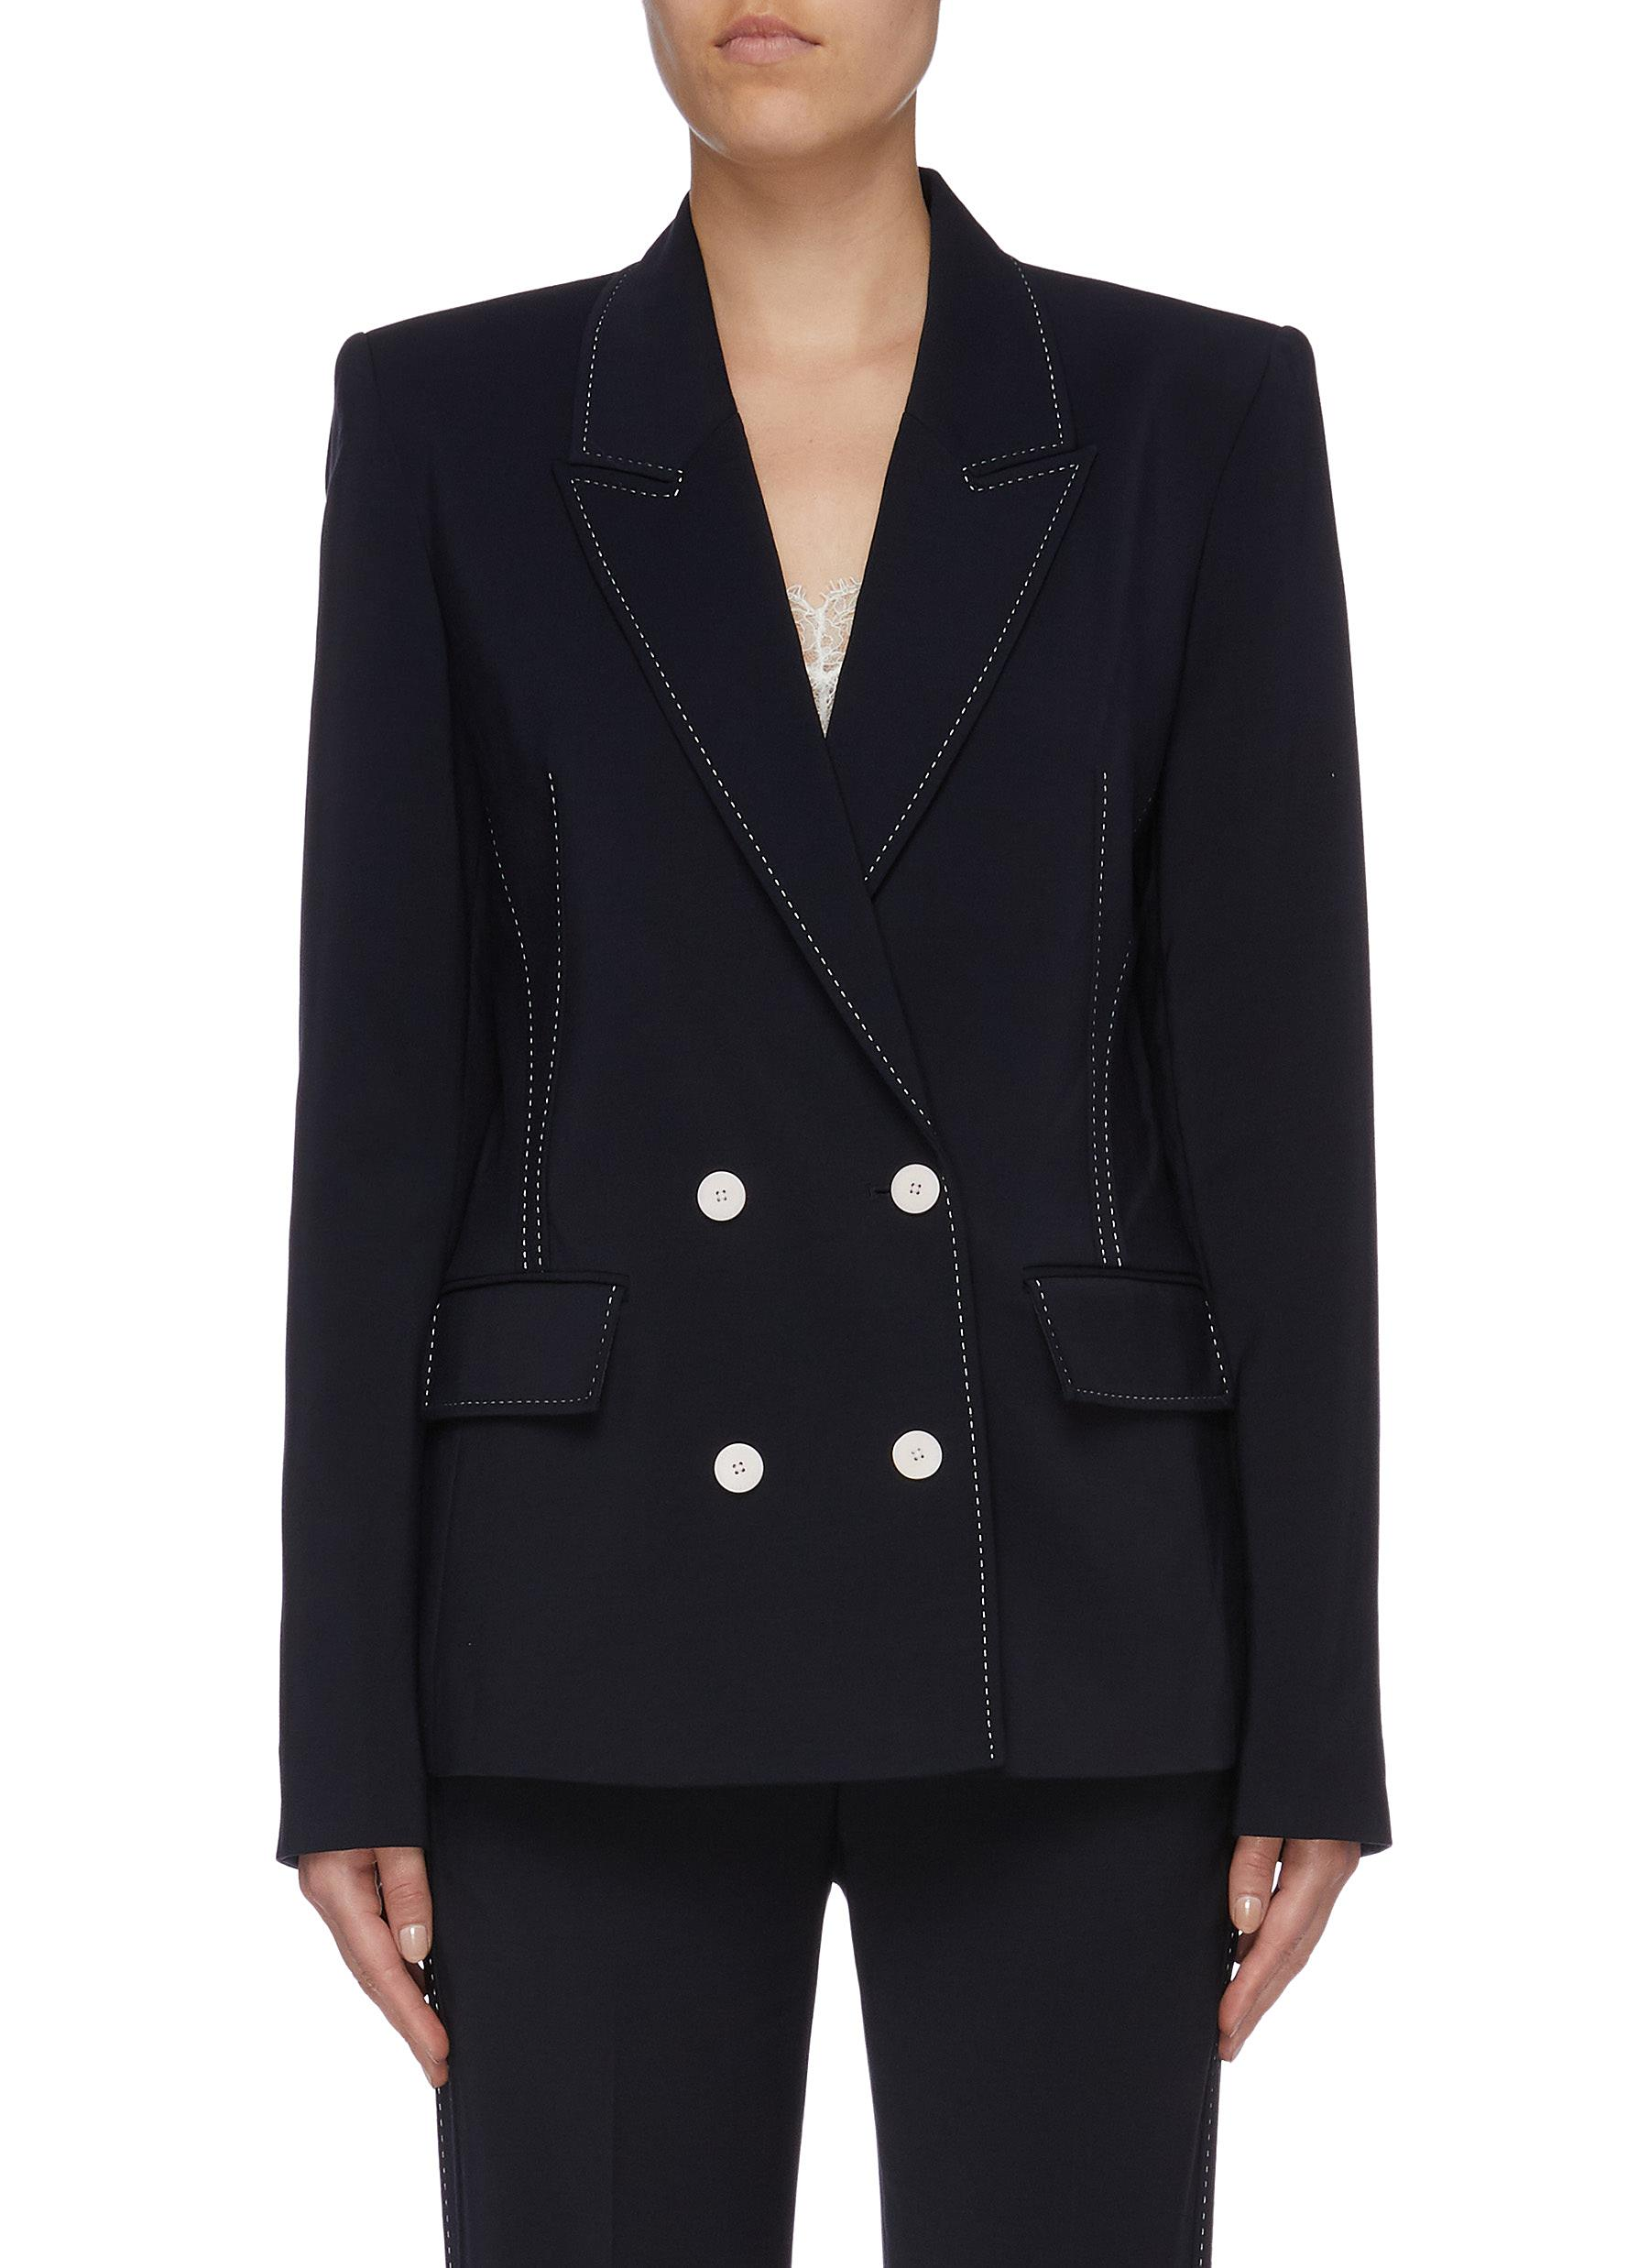 Pinstitch contrast topstitching double breasted blazer by Dion Lee